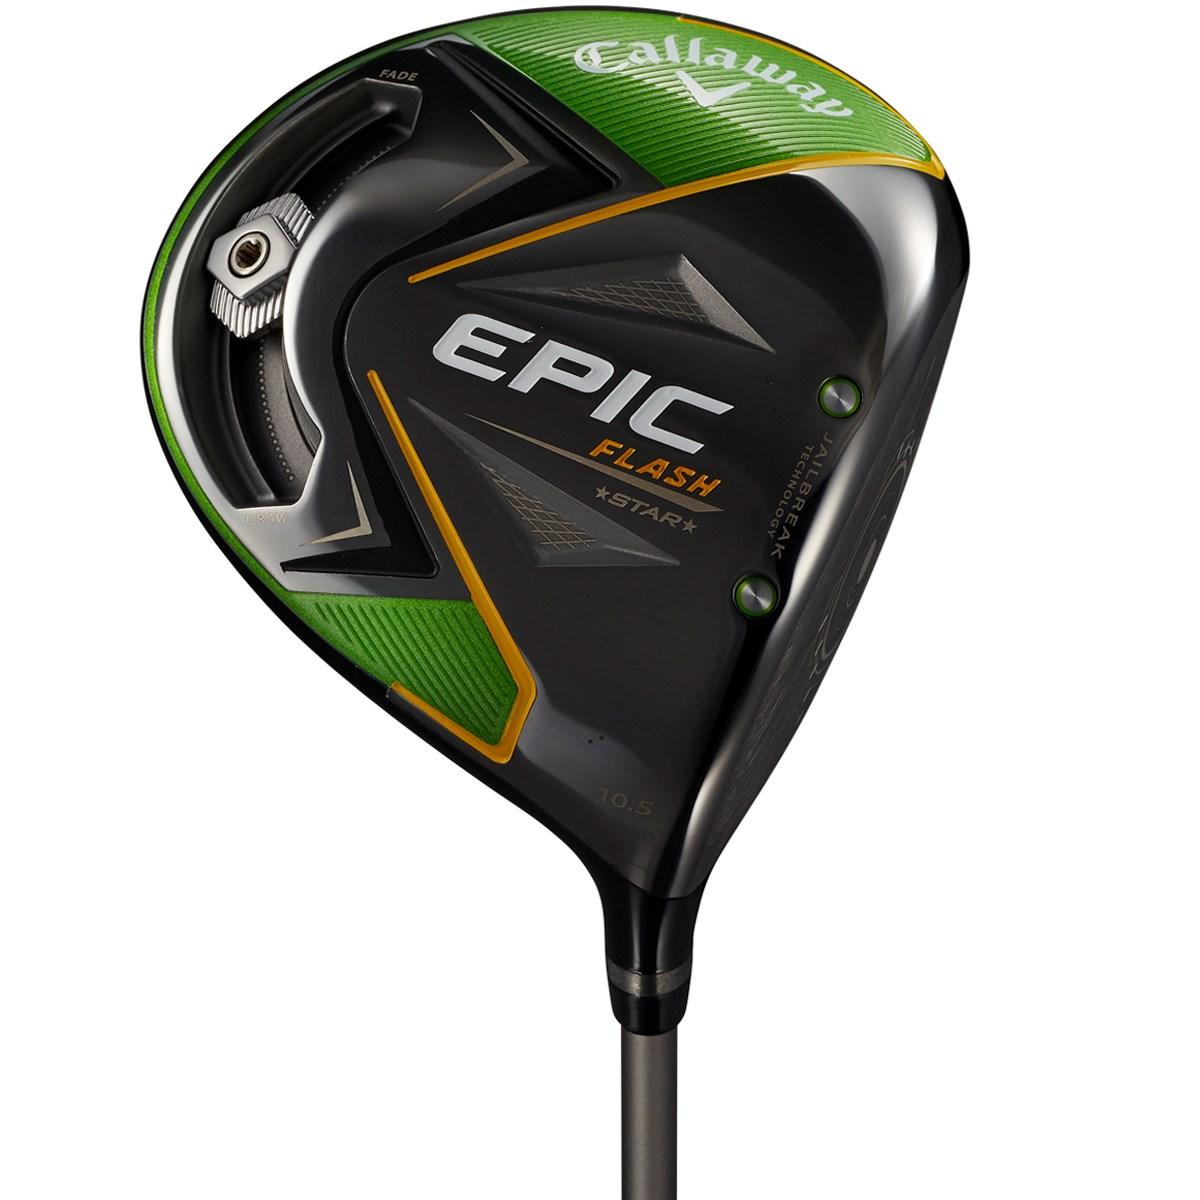 キャロウェイゴルフ GBB EPIC エピックフラッシュ STAR ドライバー Speeder Evolution for Callaway シャフト:Speeder Evolution for Callaway R 10.5° 59.5° 45.75inch